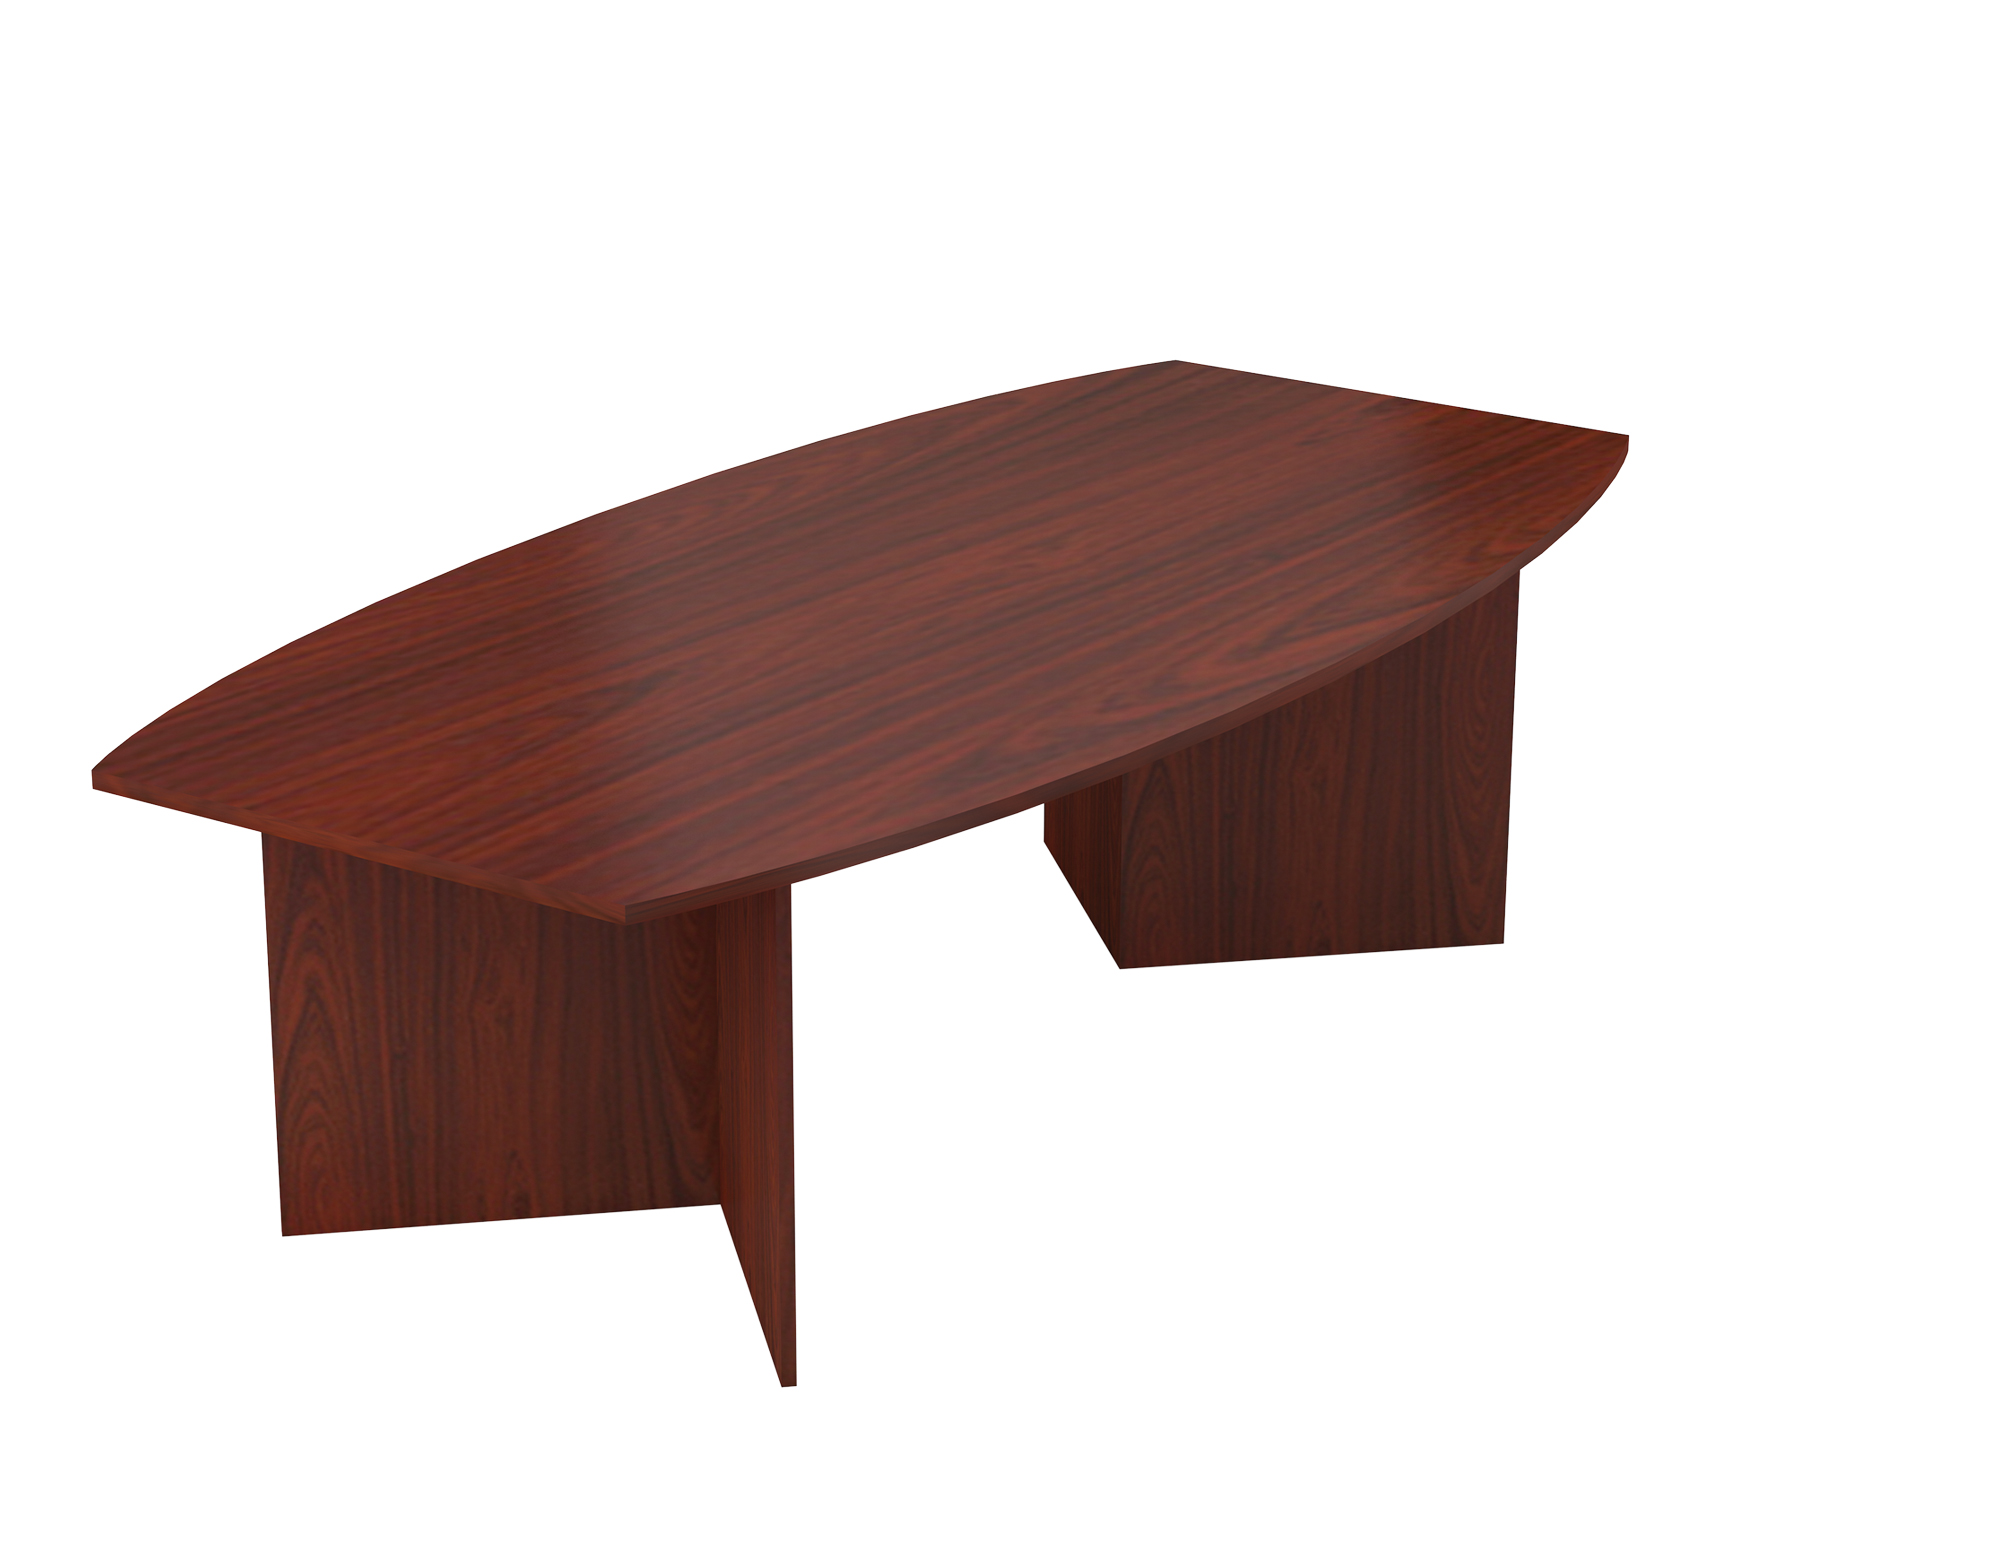 Barrel Shaped Boardroom Table 4